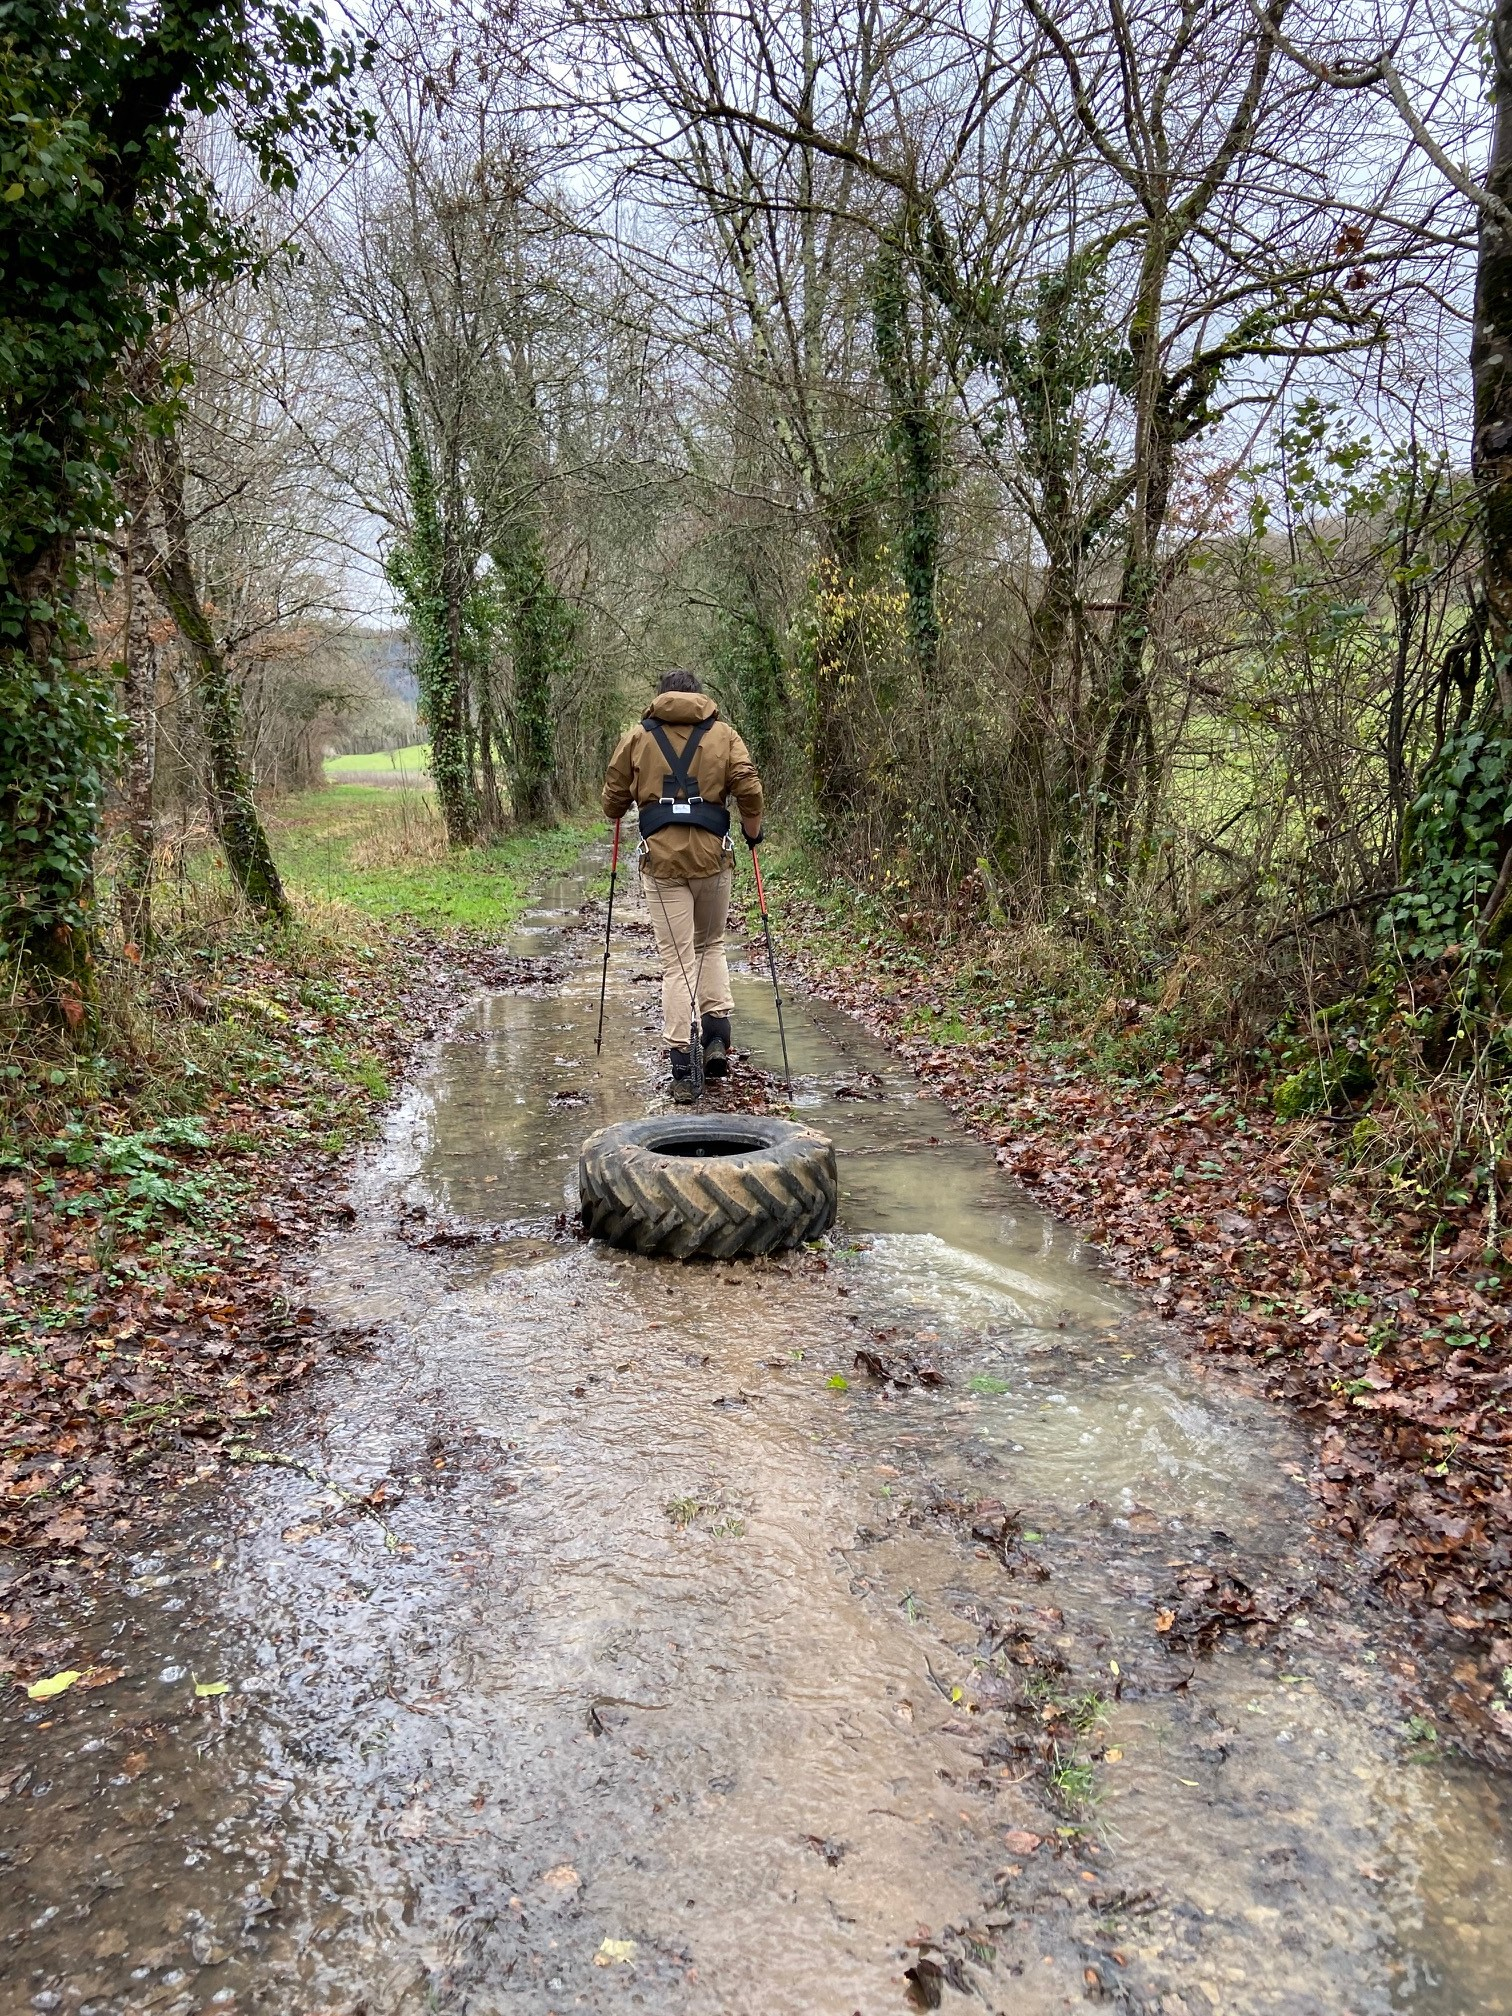 Tyre pulling along flooded paths